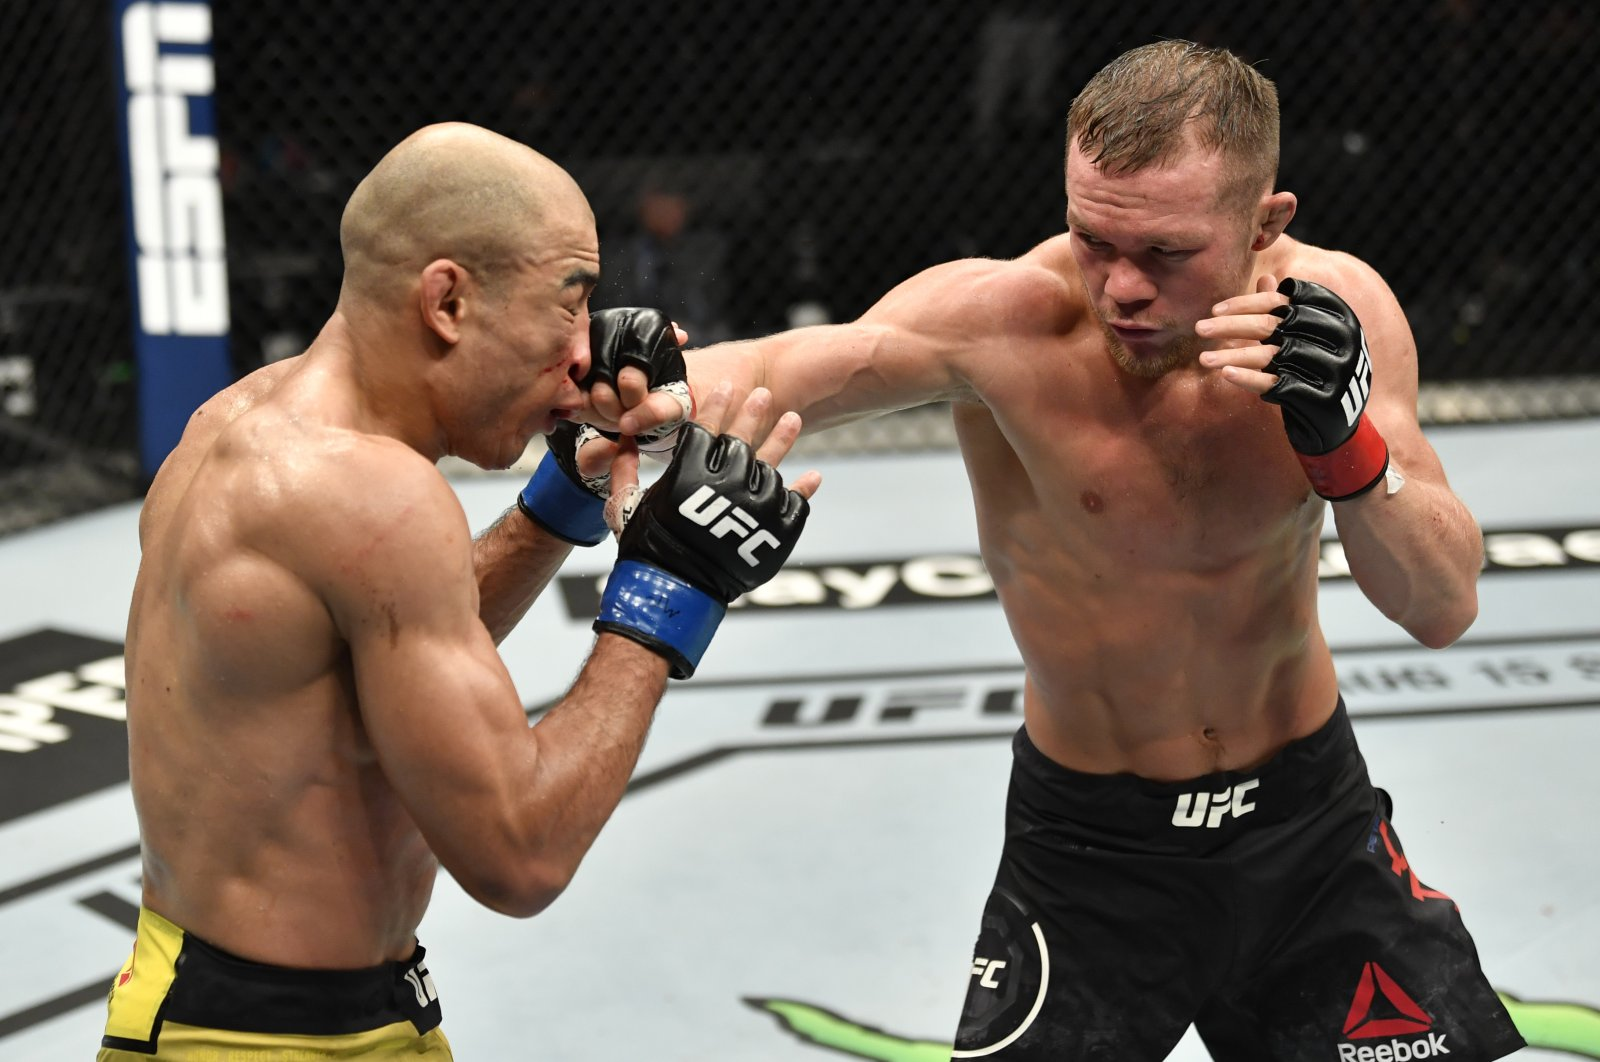 Petr Yan punches Jose Aldo in their UFC bantamweight championship fight on UFC Fight Island, Abu Dhabi, UAE, July 12, 2020. (Reuters Photo)